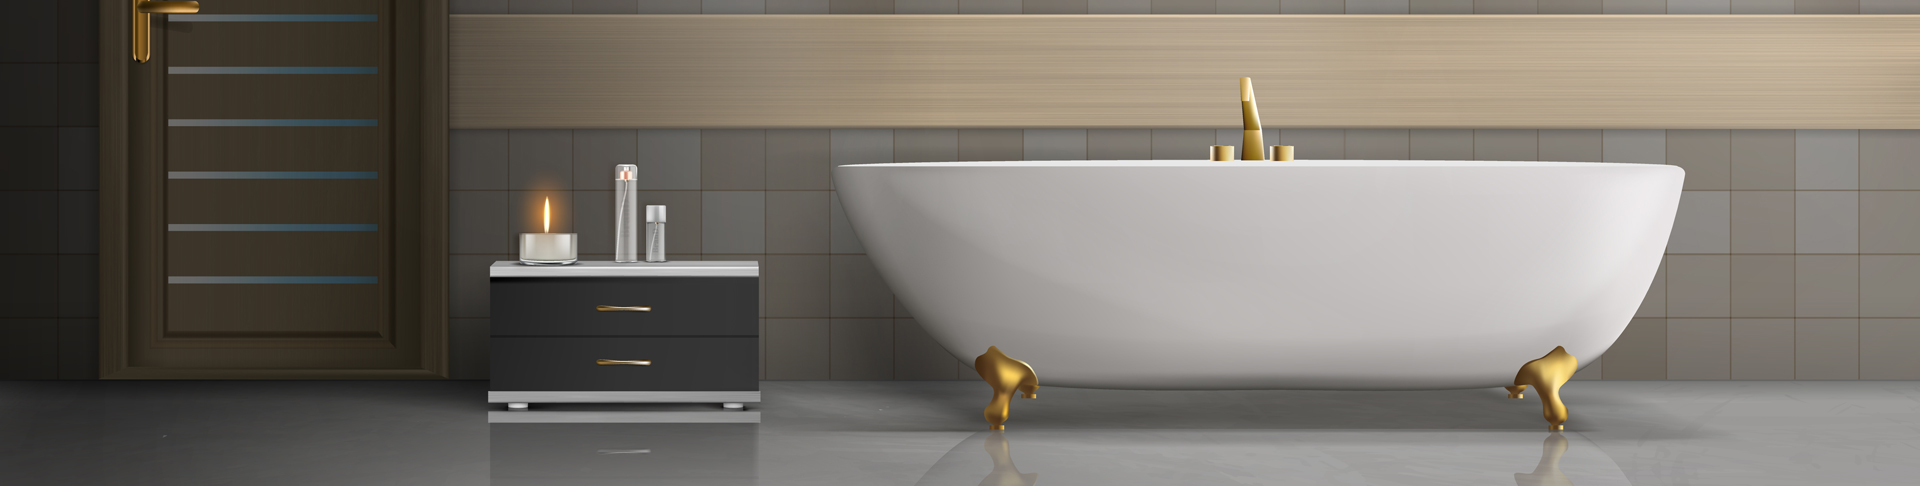 Bathtub Dimensions Your Guide For Standard Tub Sizes